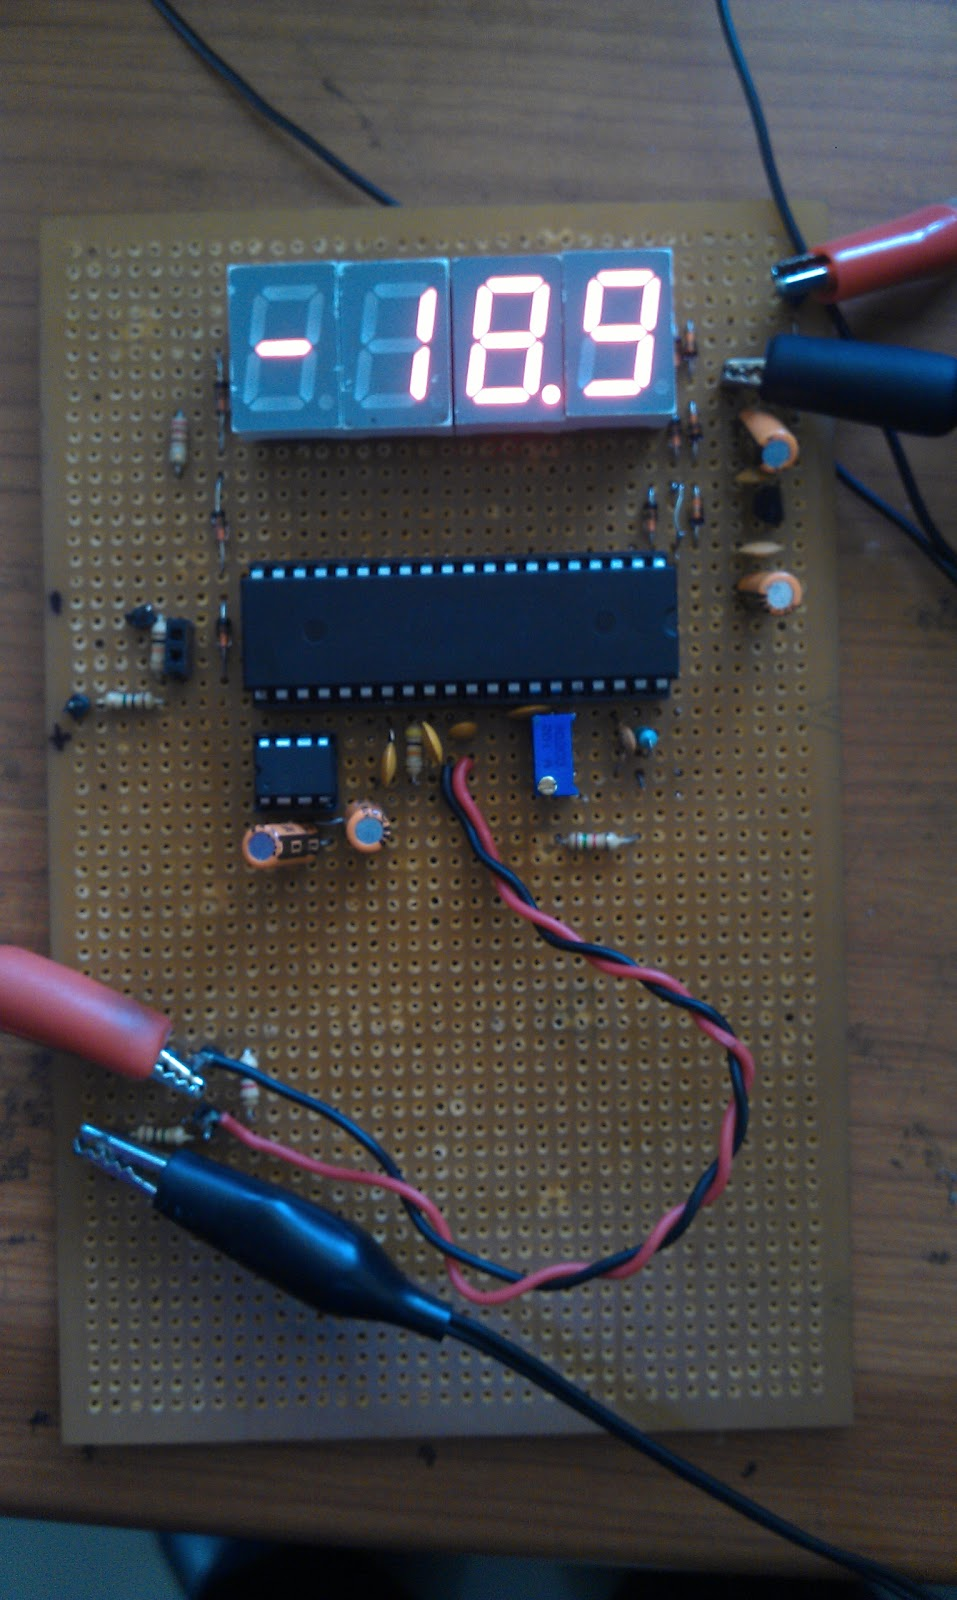 Ham Radio Mipl 2012 Icl7107 Digital Led Voltmeter Electronics Circuit Picture Hd Walls Have A Look At Some Working Snapshot Of Using